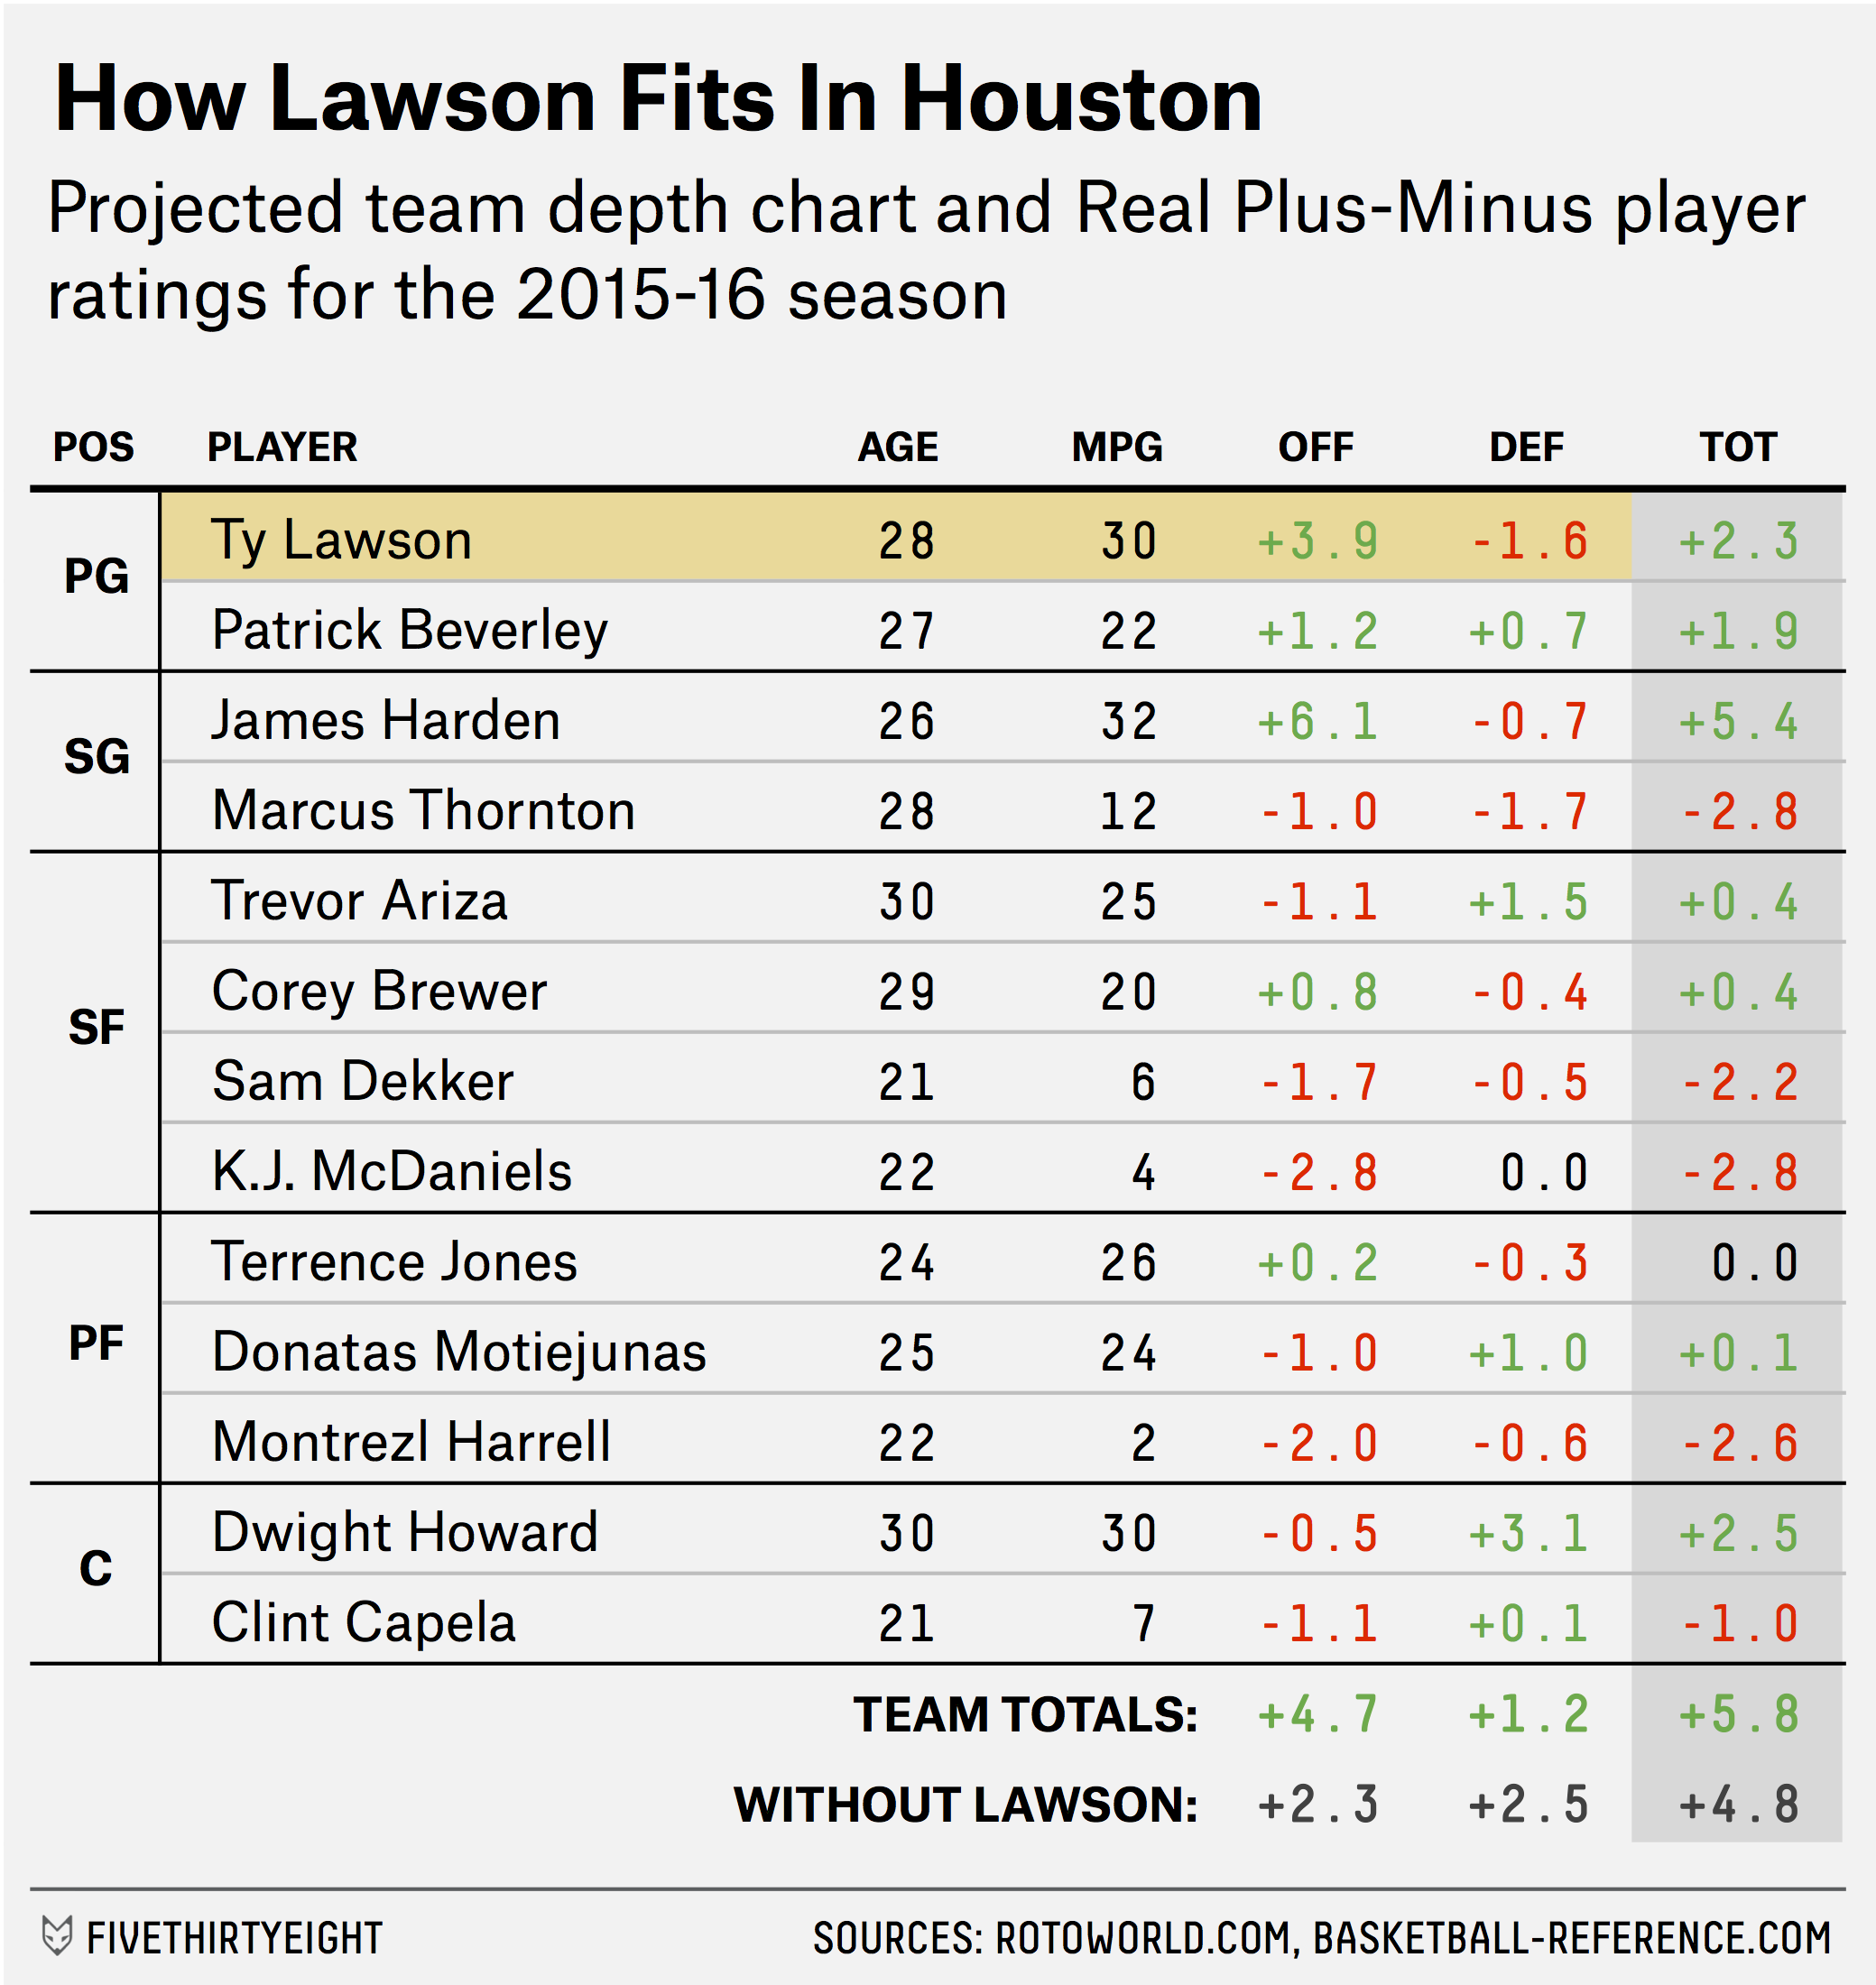 paine-datalab-rockets-lawson